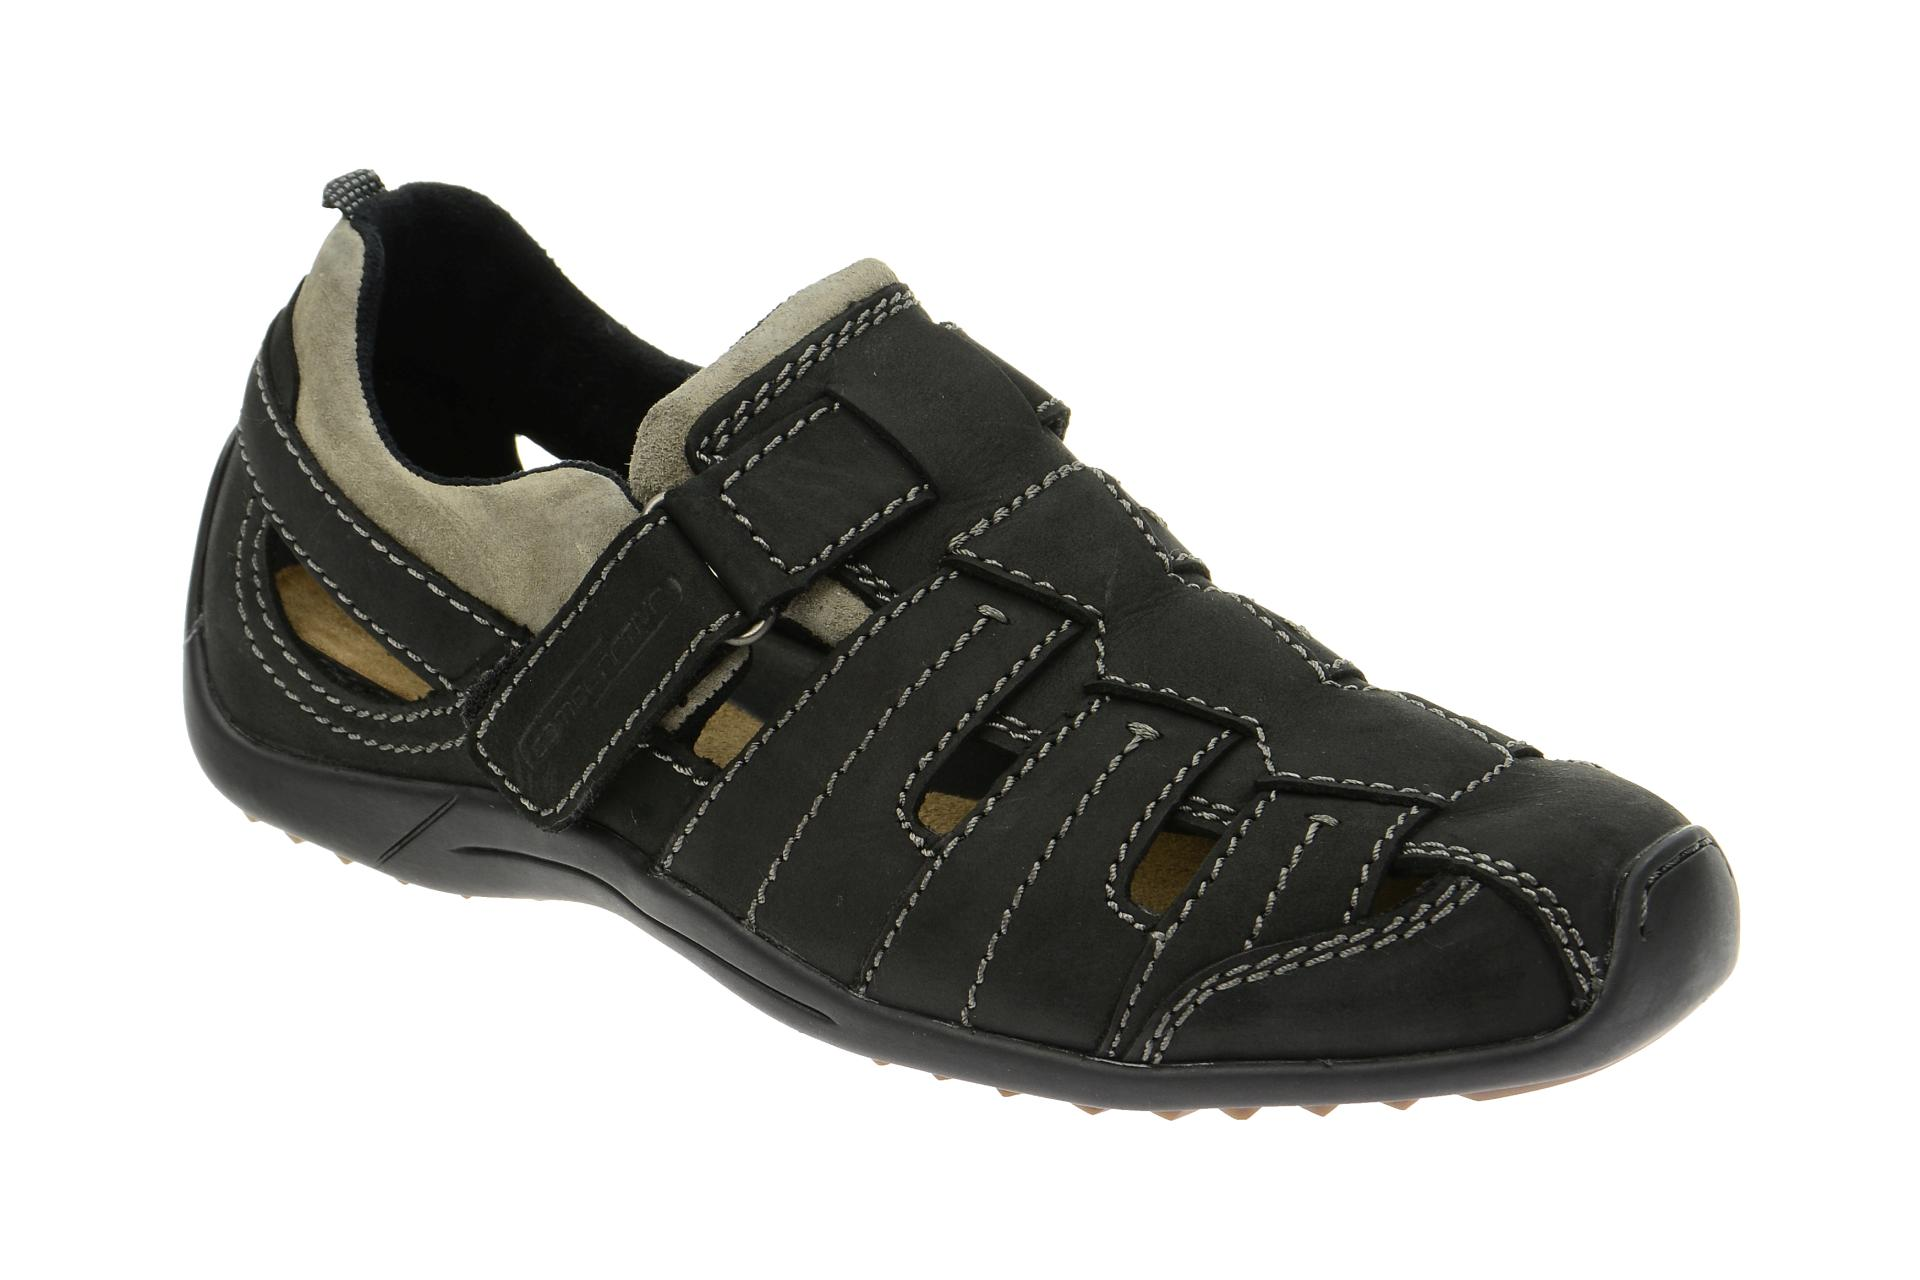 sports shoes 25c9e b826b camel active Manila 12 Schuhe schwarz grau 292.12.03